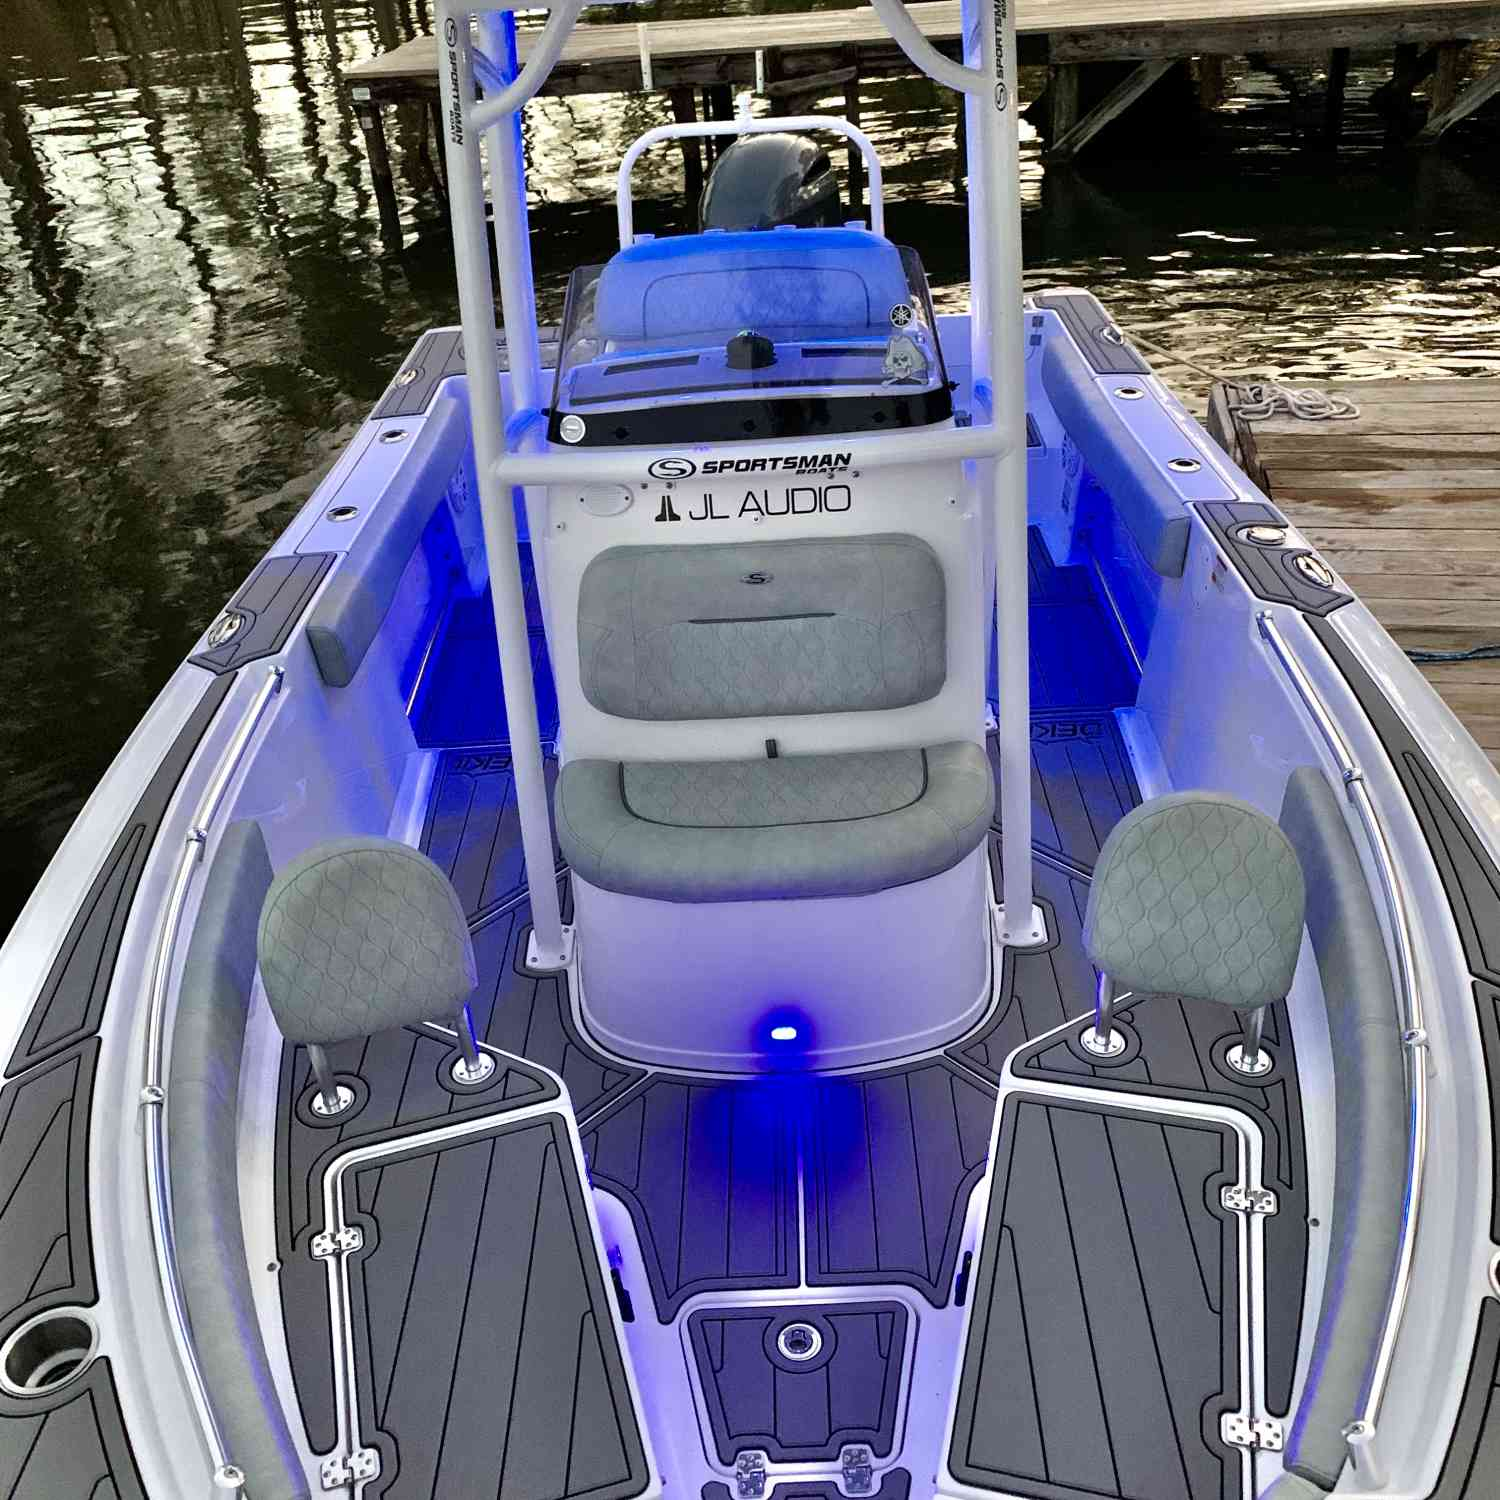 Title: Sunset Rides - On board their Sportsman Open 212 Center Console - Location: Lake Murray SC. Participating in the Photo Contest #SportsmanApril2020